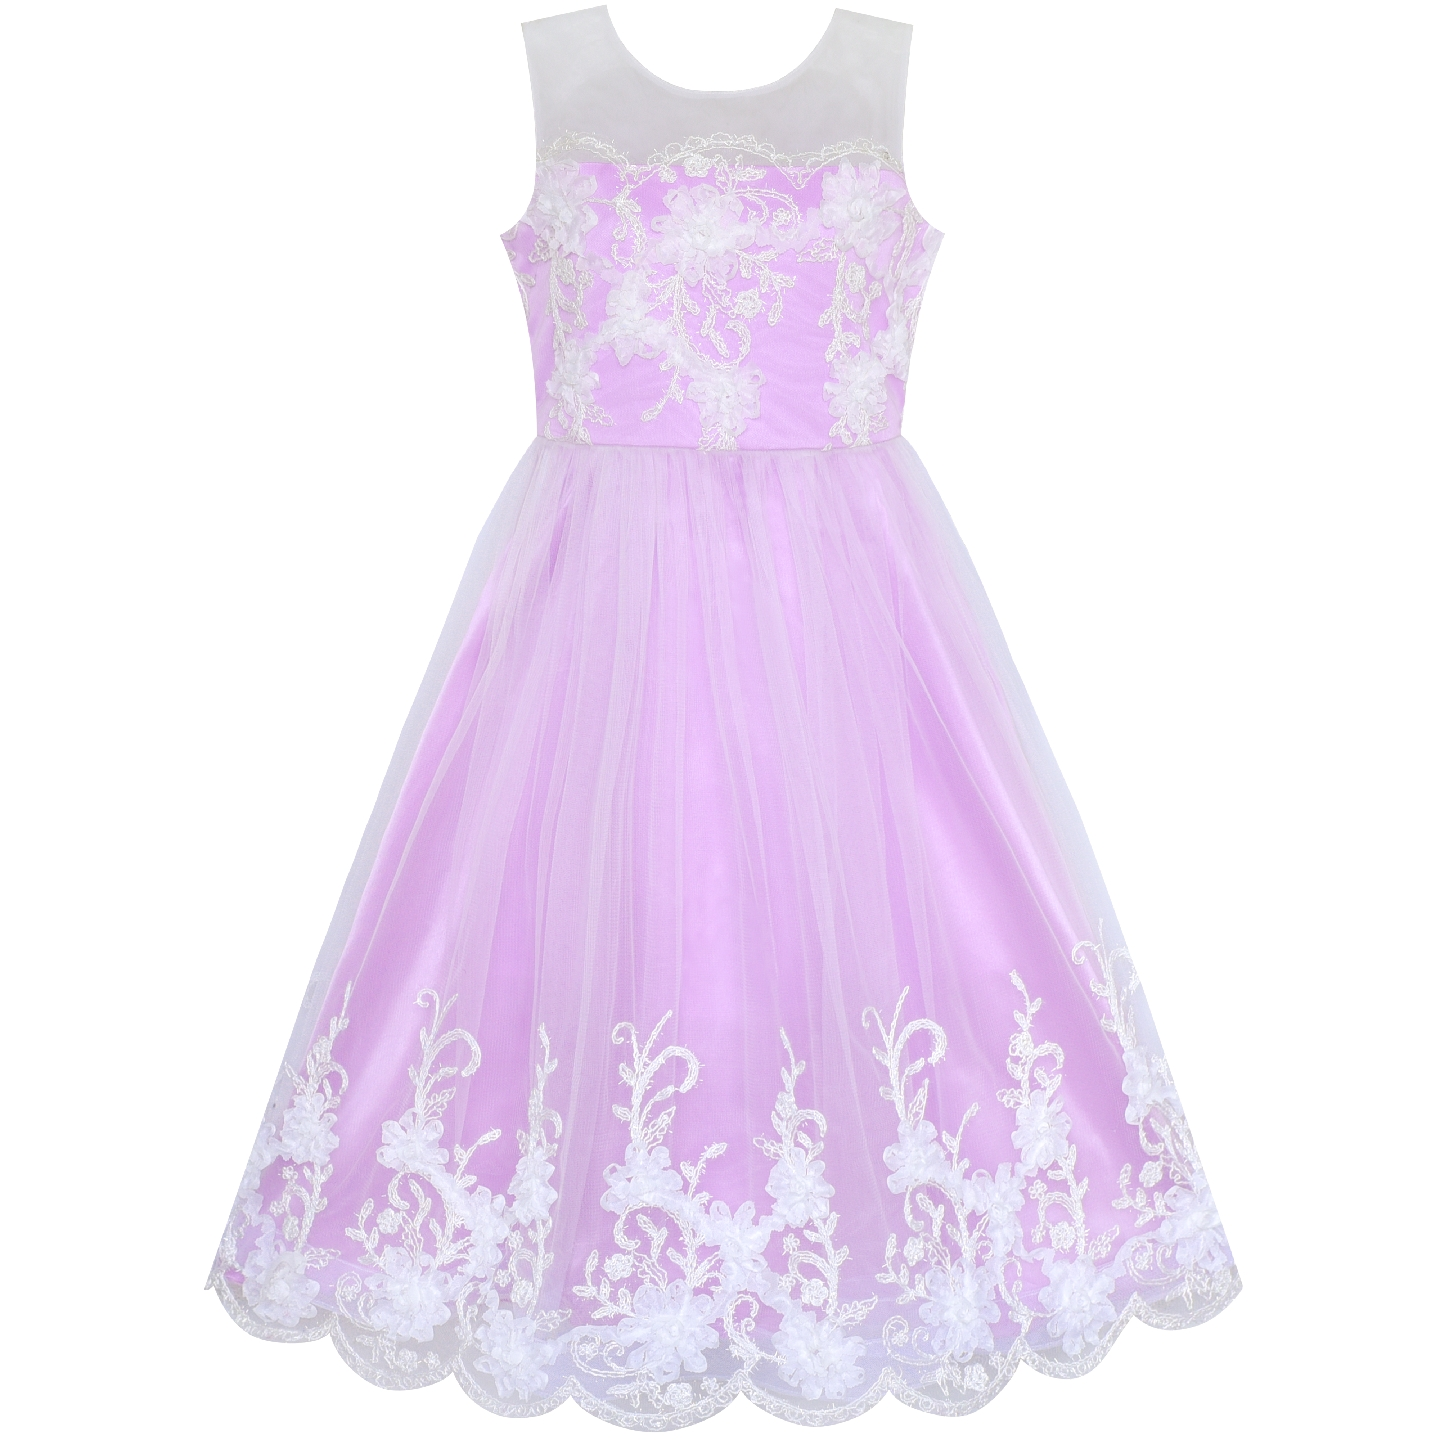 Flower Girls Dress Purple Illusion Shoulder Wedding Pageant 2019 Summer Princess Party Dresses Kids Clothes Sundress Vestidos girls dress blue flower bow tie tulle party princess 2018 summer wedding dresses kids clothes size 4 12 pageant sundress